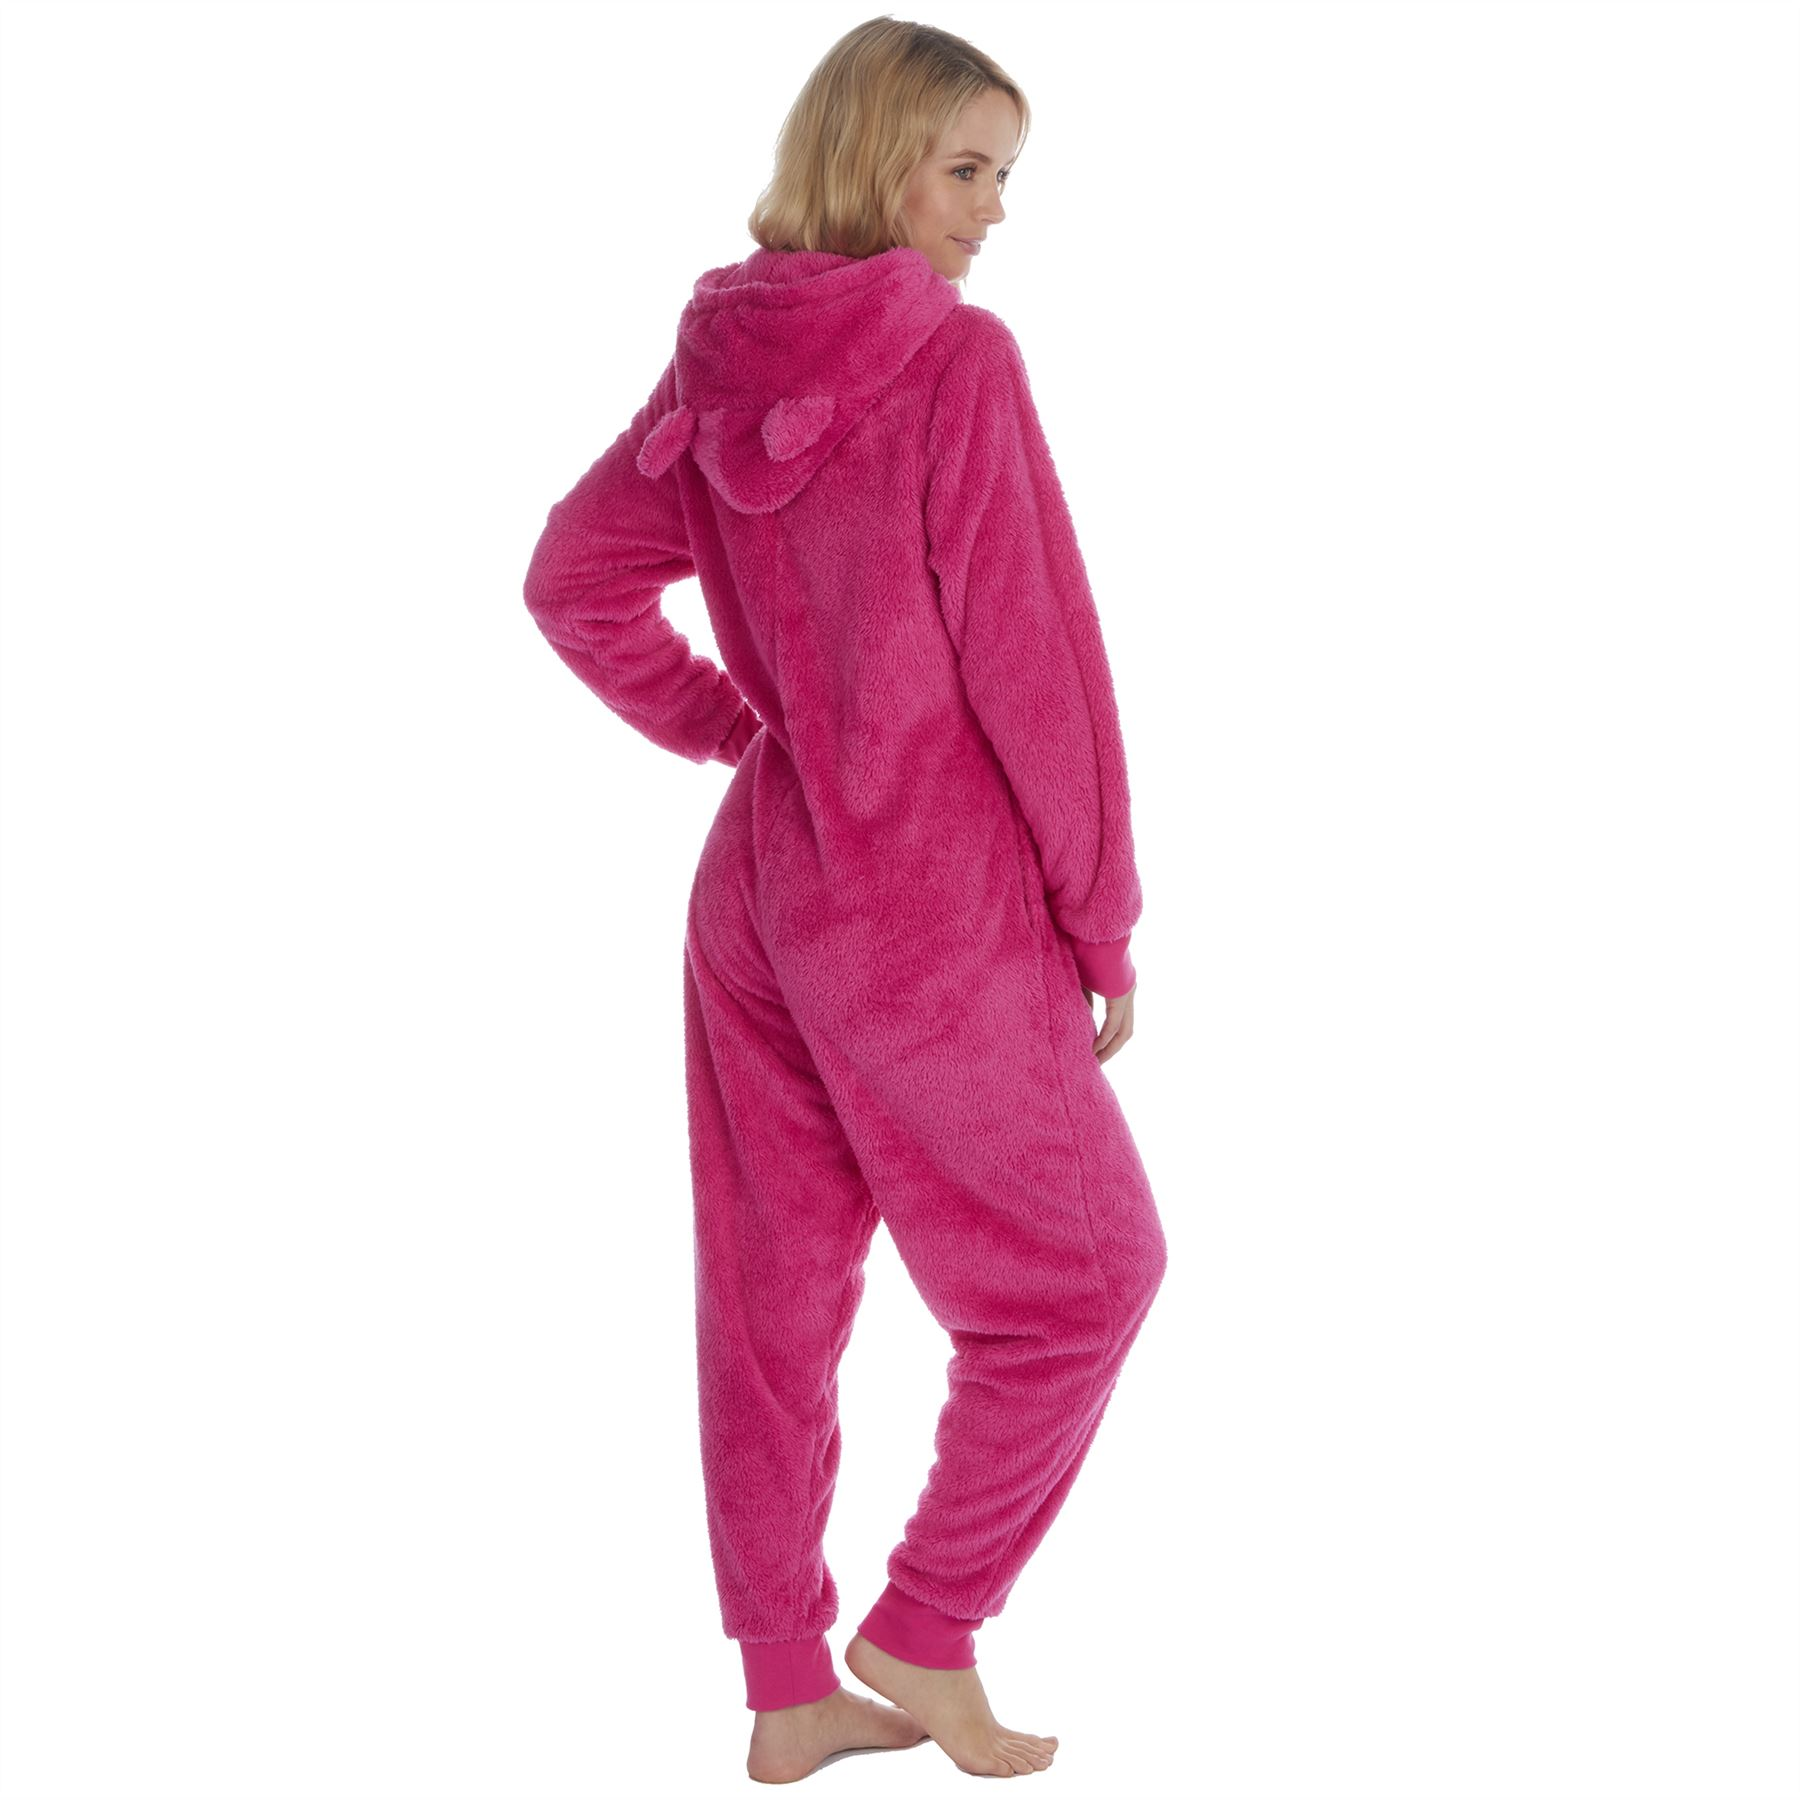 Ladies-Womens-Girls-Fleece-All-In-One-Pyjamas-Outfit-Jumpsuit-Costume-Size-6-18 thumbnail 64